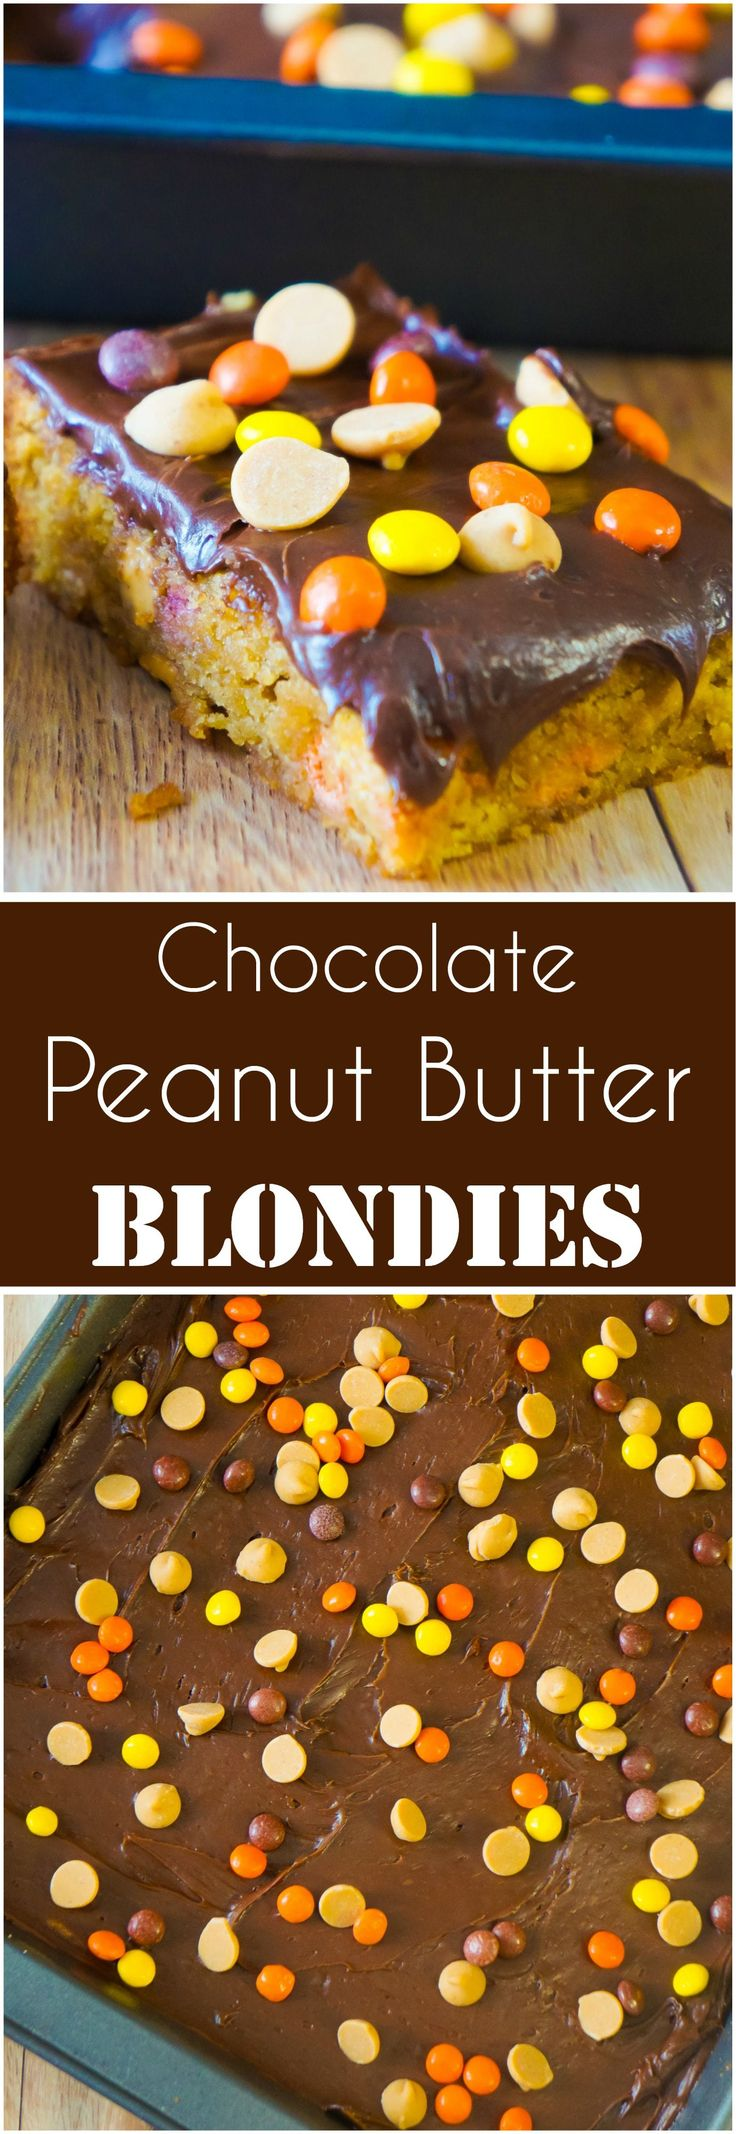 Chocolate Peanut Butter Blondies are a decadent chocolate peanut butter dessert. These peanut butter brownies are loaded with mini Reese's Pieces and peanut butter chipits. Peanut butter bars perfect for any occasion.